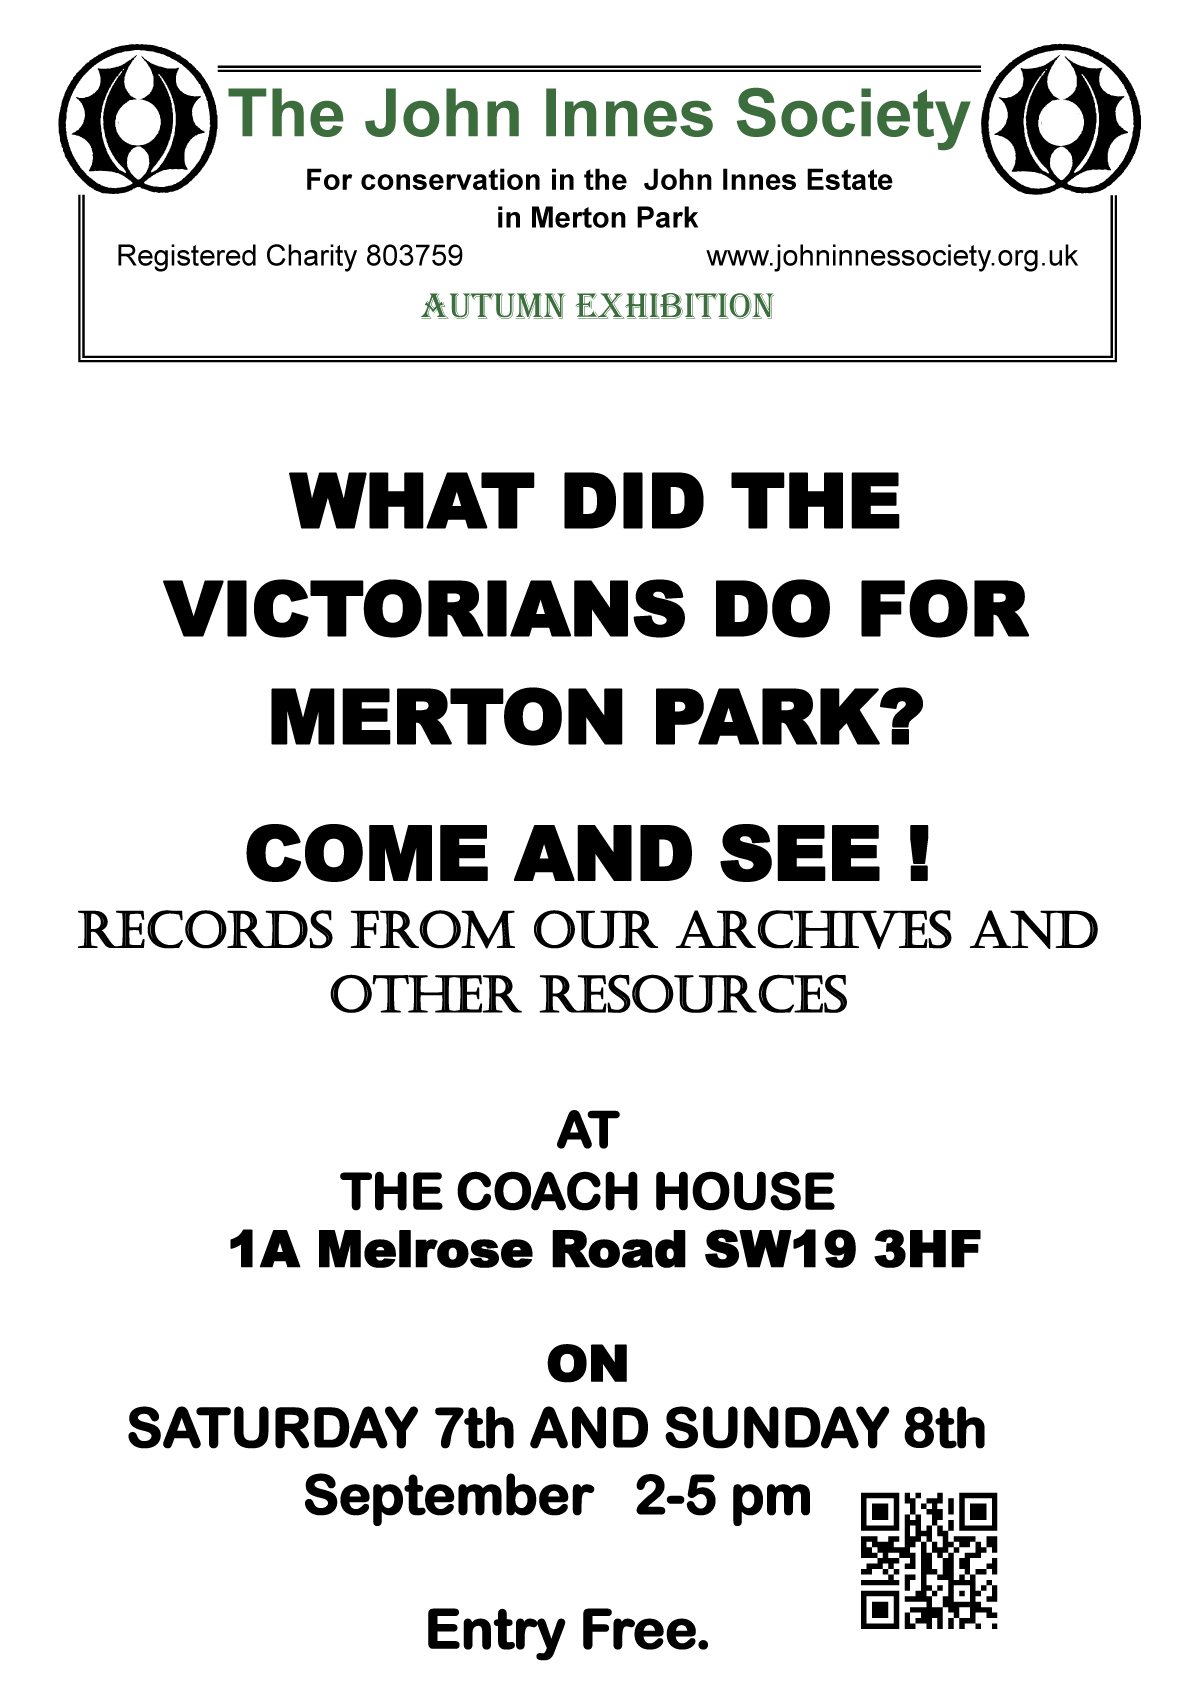 Victorians and Merton Park Exhibition Poster 2019